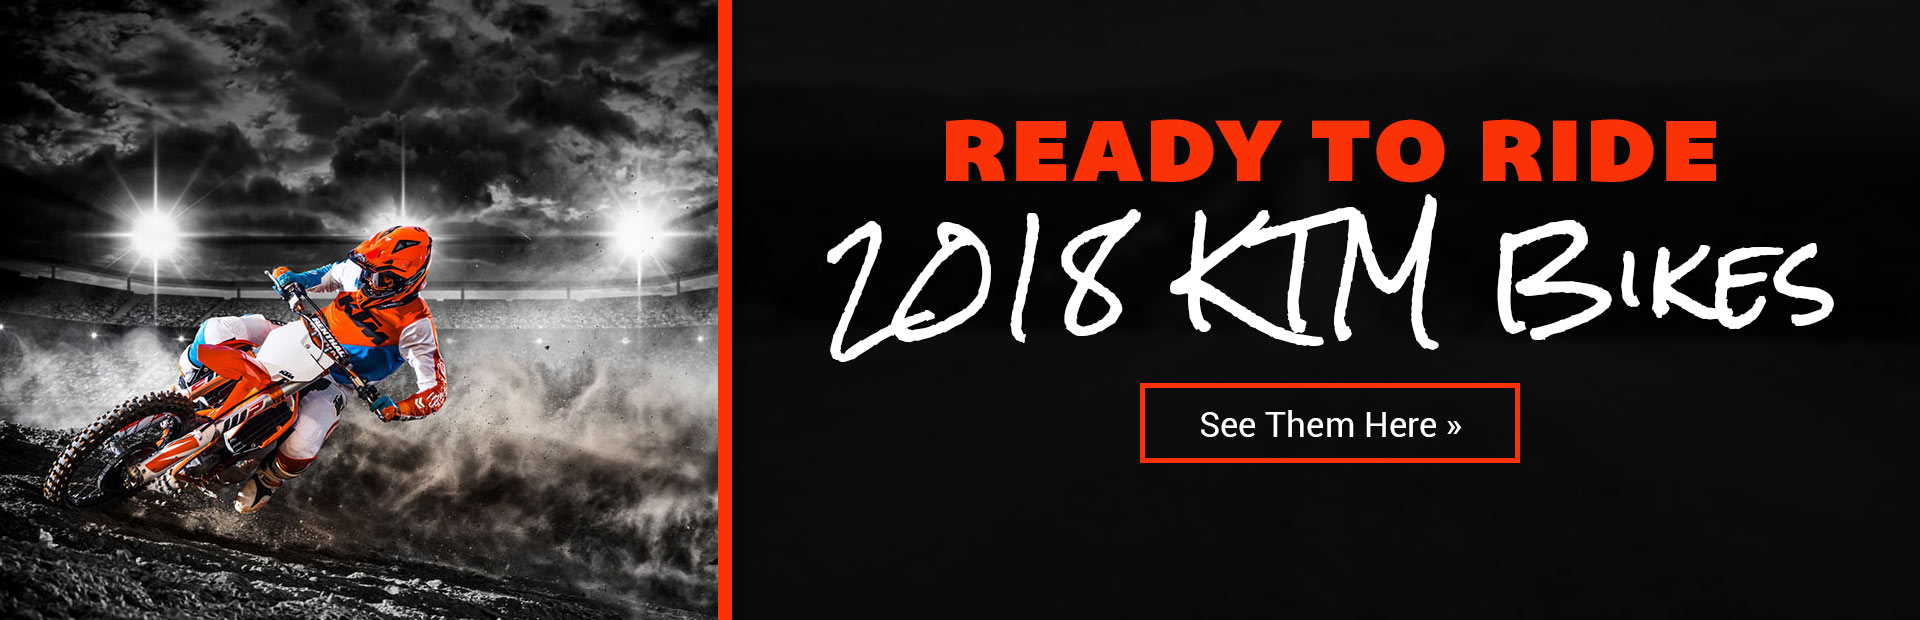 2018 KTM Bikes: Click here to view the models.